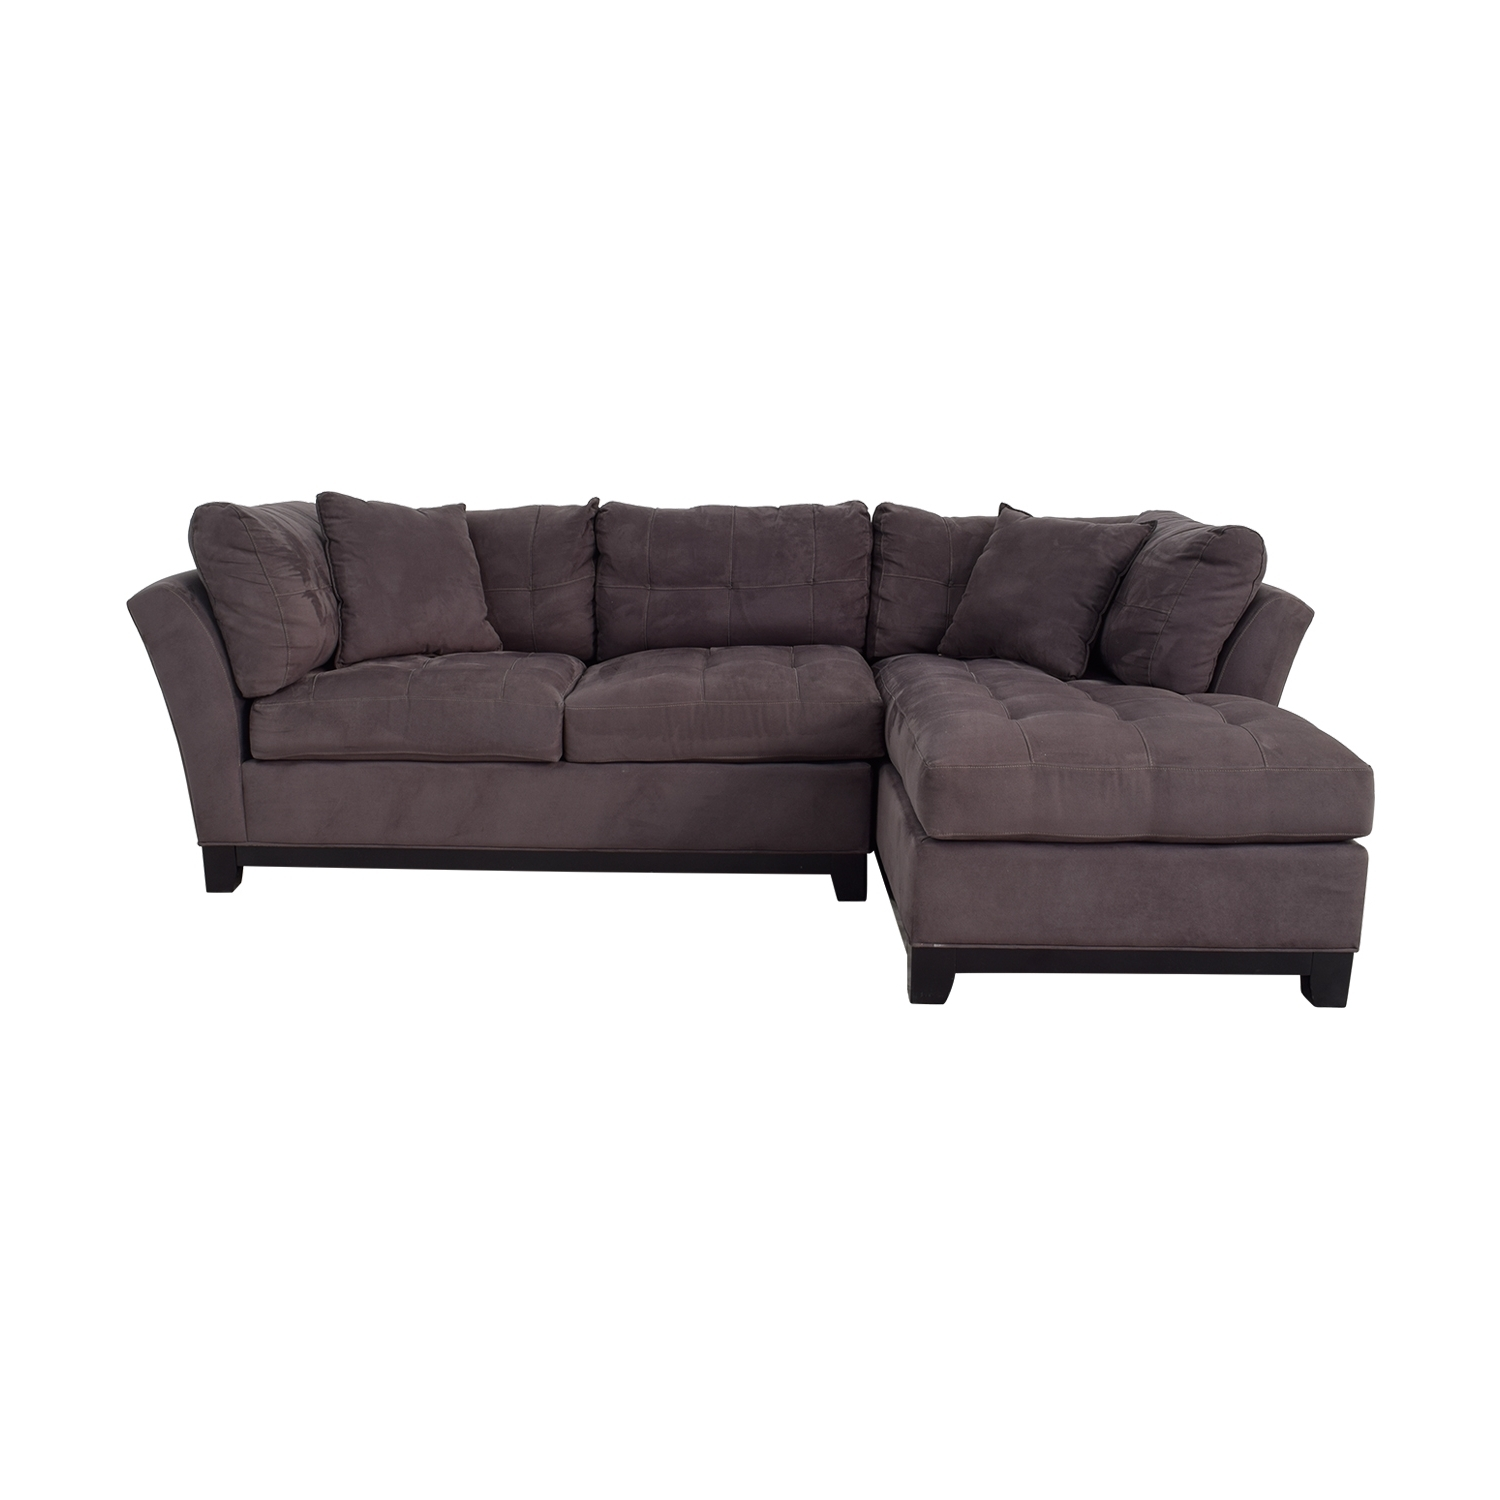 [%64% Off – Raymour & Flanigan Raymour & Flanigan Cindy Crawford With Recent Raymour And Flanigan Sectional Sofas|Raymour And Flanigan Sectional Sofas In Preferred 64% Off – Raymour & Flanigan Raymour & Flanigan Cindy Crawford|Most Recent Raymour And Flanigan Sectional Sofas For 64% Off – Raymour & Flanigan Raymour & Flanigan Cindy Crawford|Most Recently Released 64% Off – Raymour & Flanigan Raymour & Flanigan Cindy Crawford With Regard To Raymour And Flanigan Sectional Sofas%] (View 4 of 20)